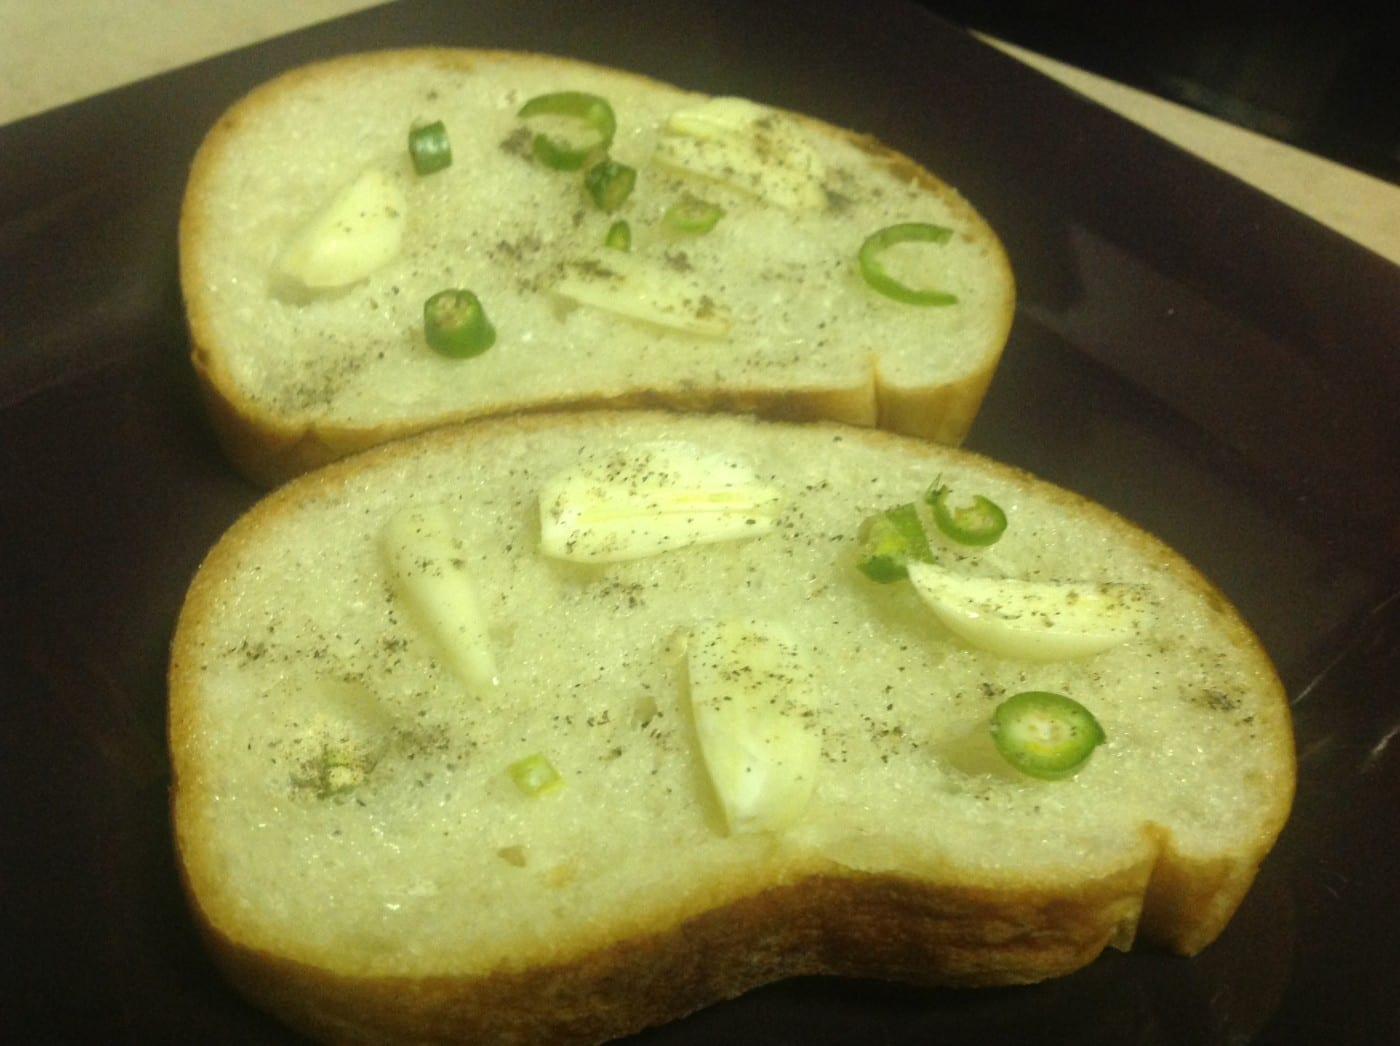 Overhead view of 2 pieces of toast on bread with garlic and chopped Thai chili